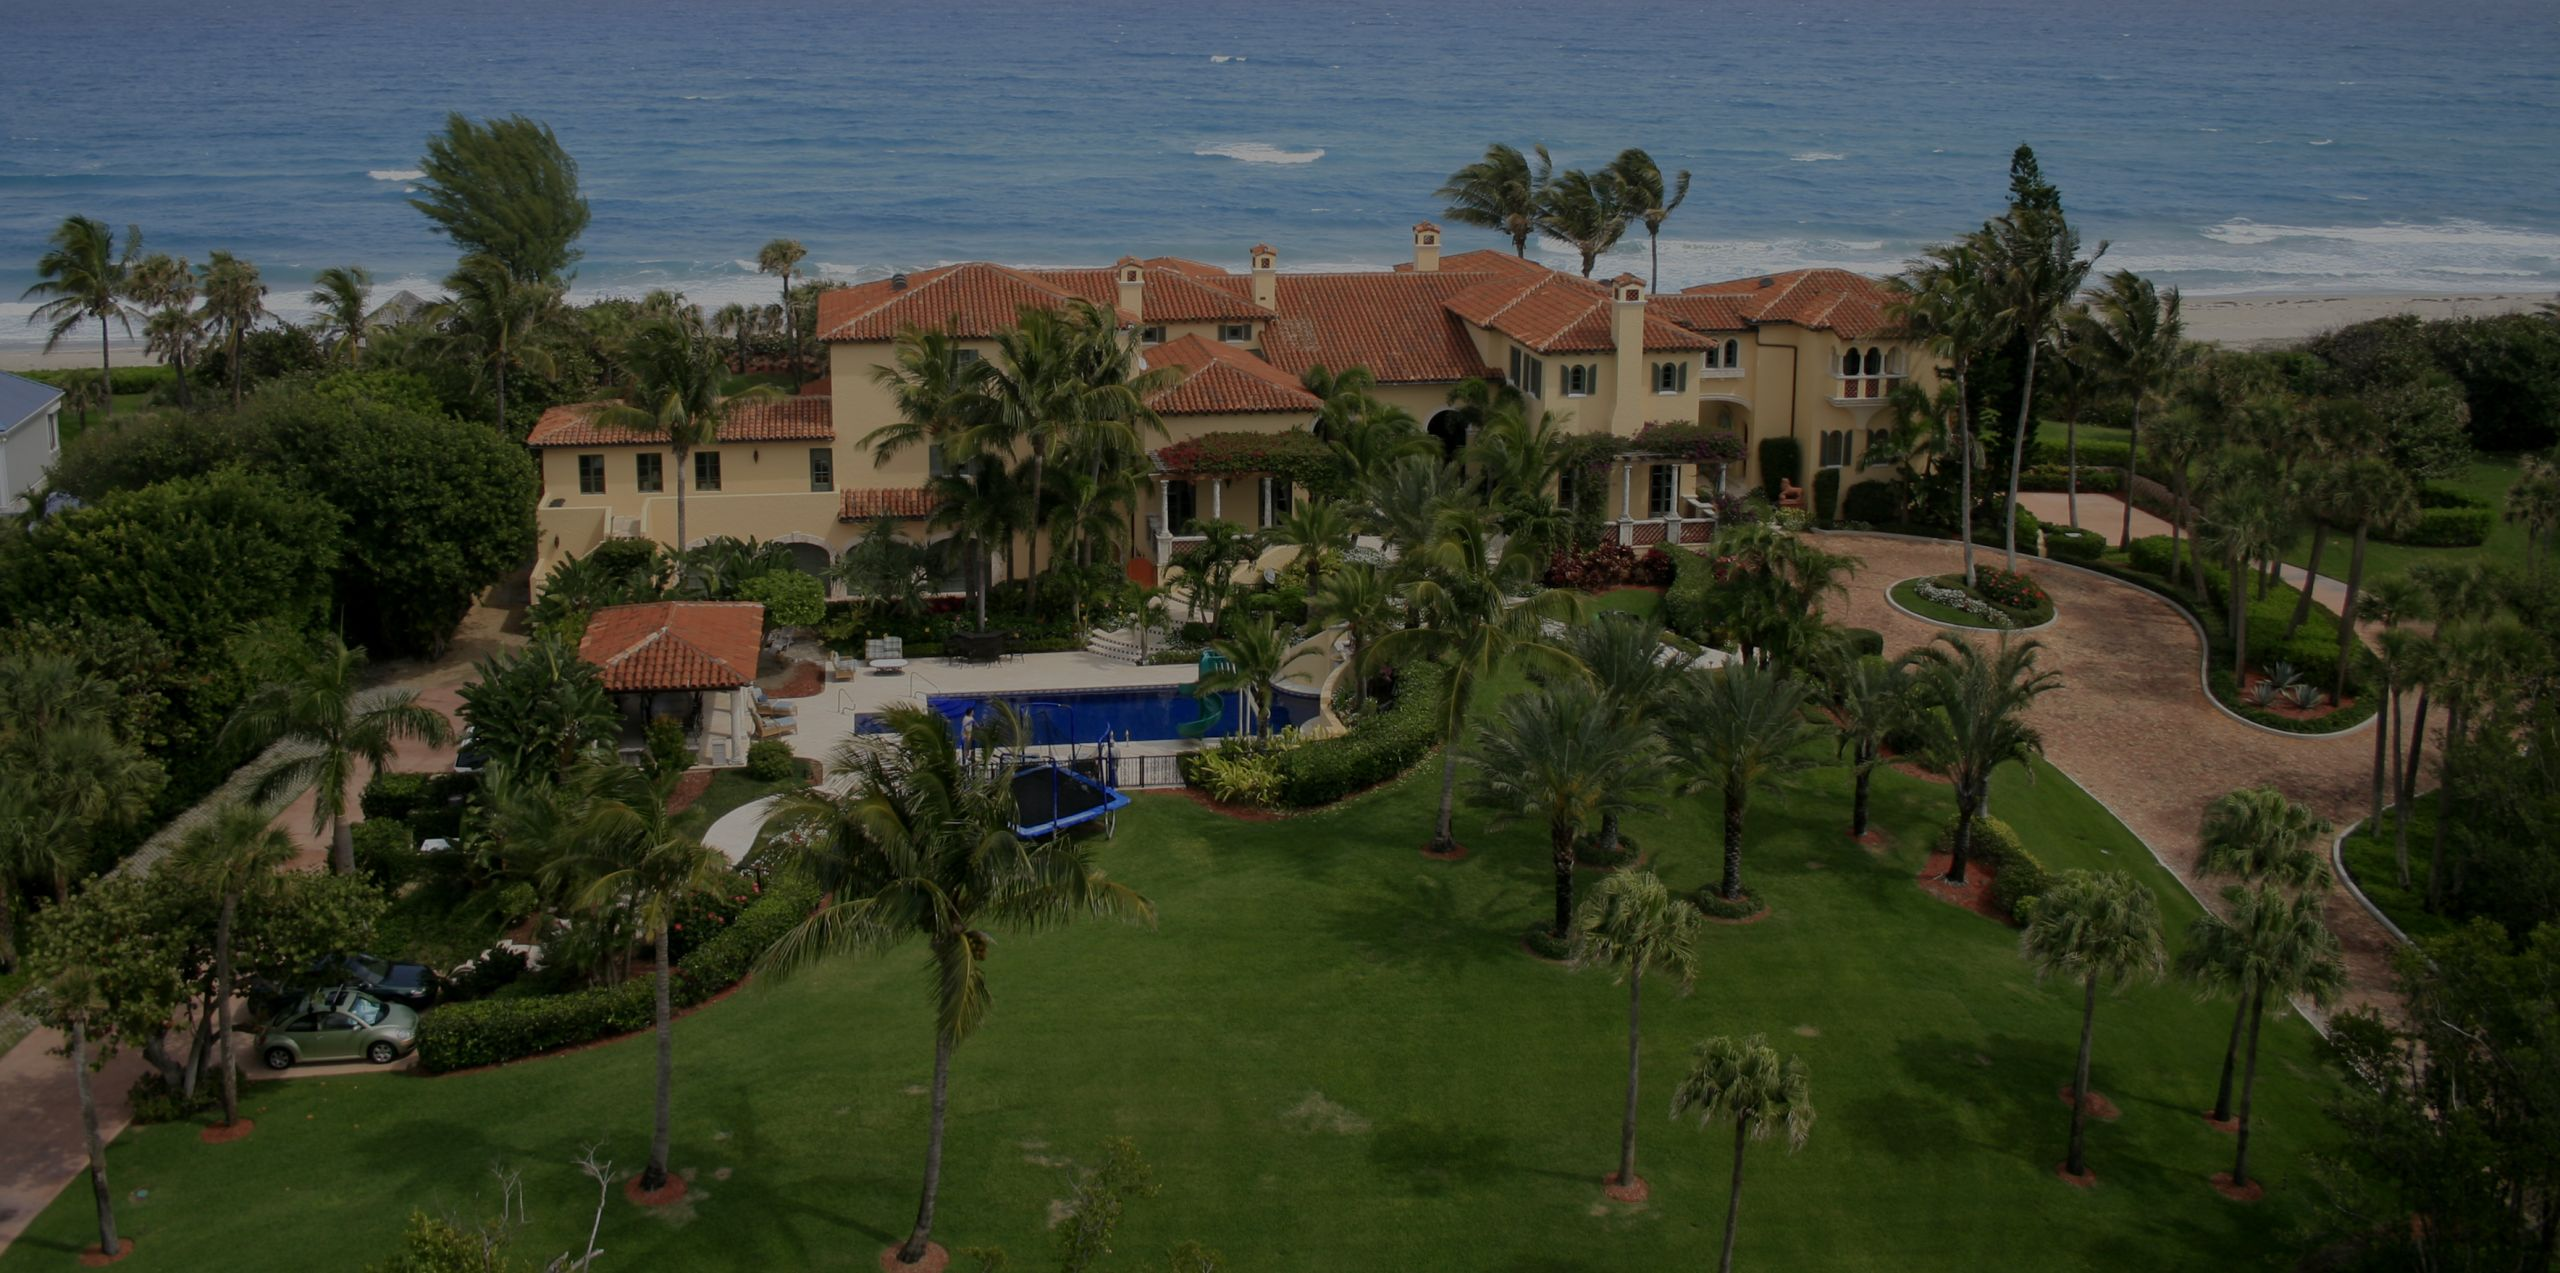 The 9 Step System to get your Palm Beach County Home Sold FAST and for Top Dollar